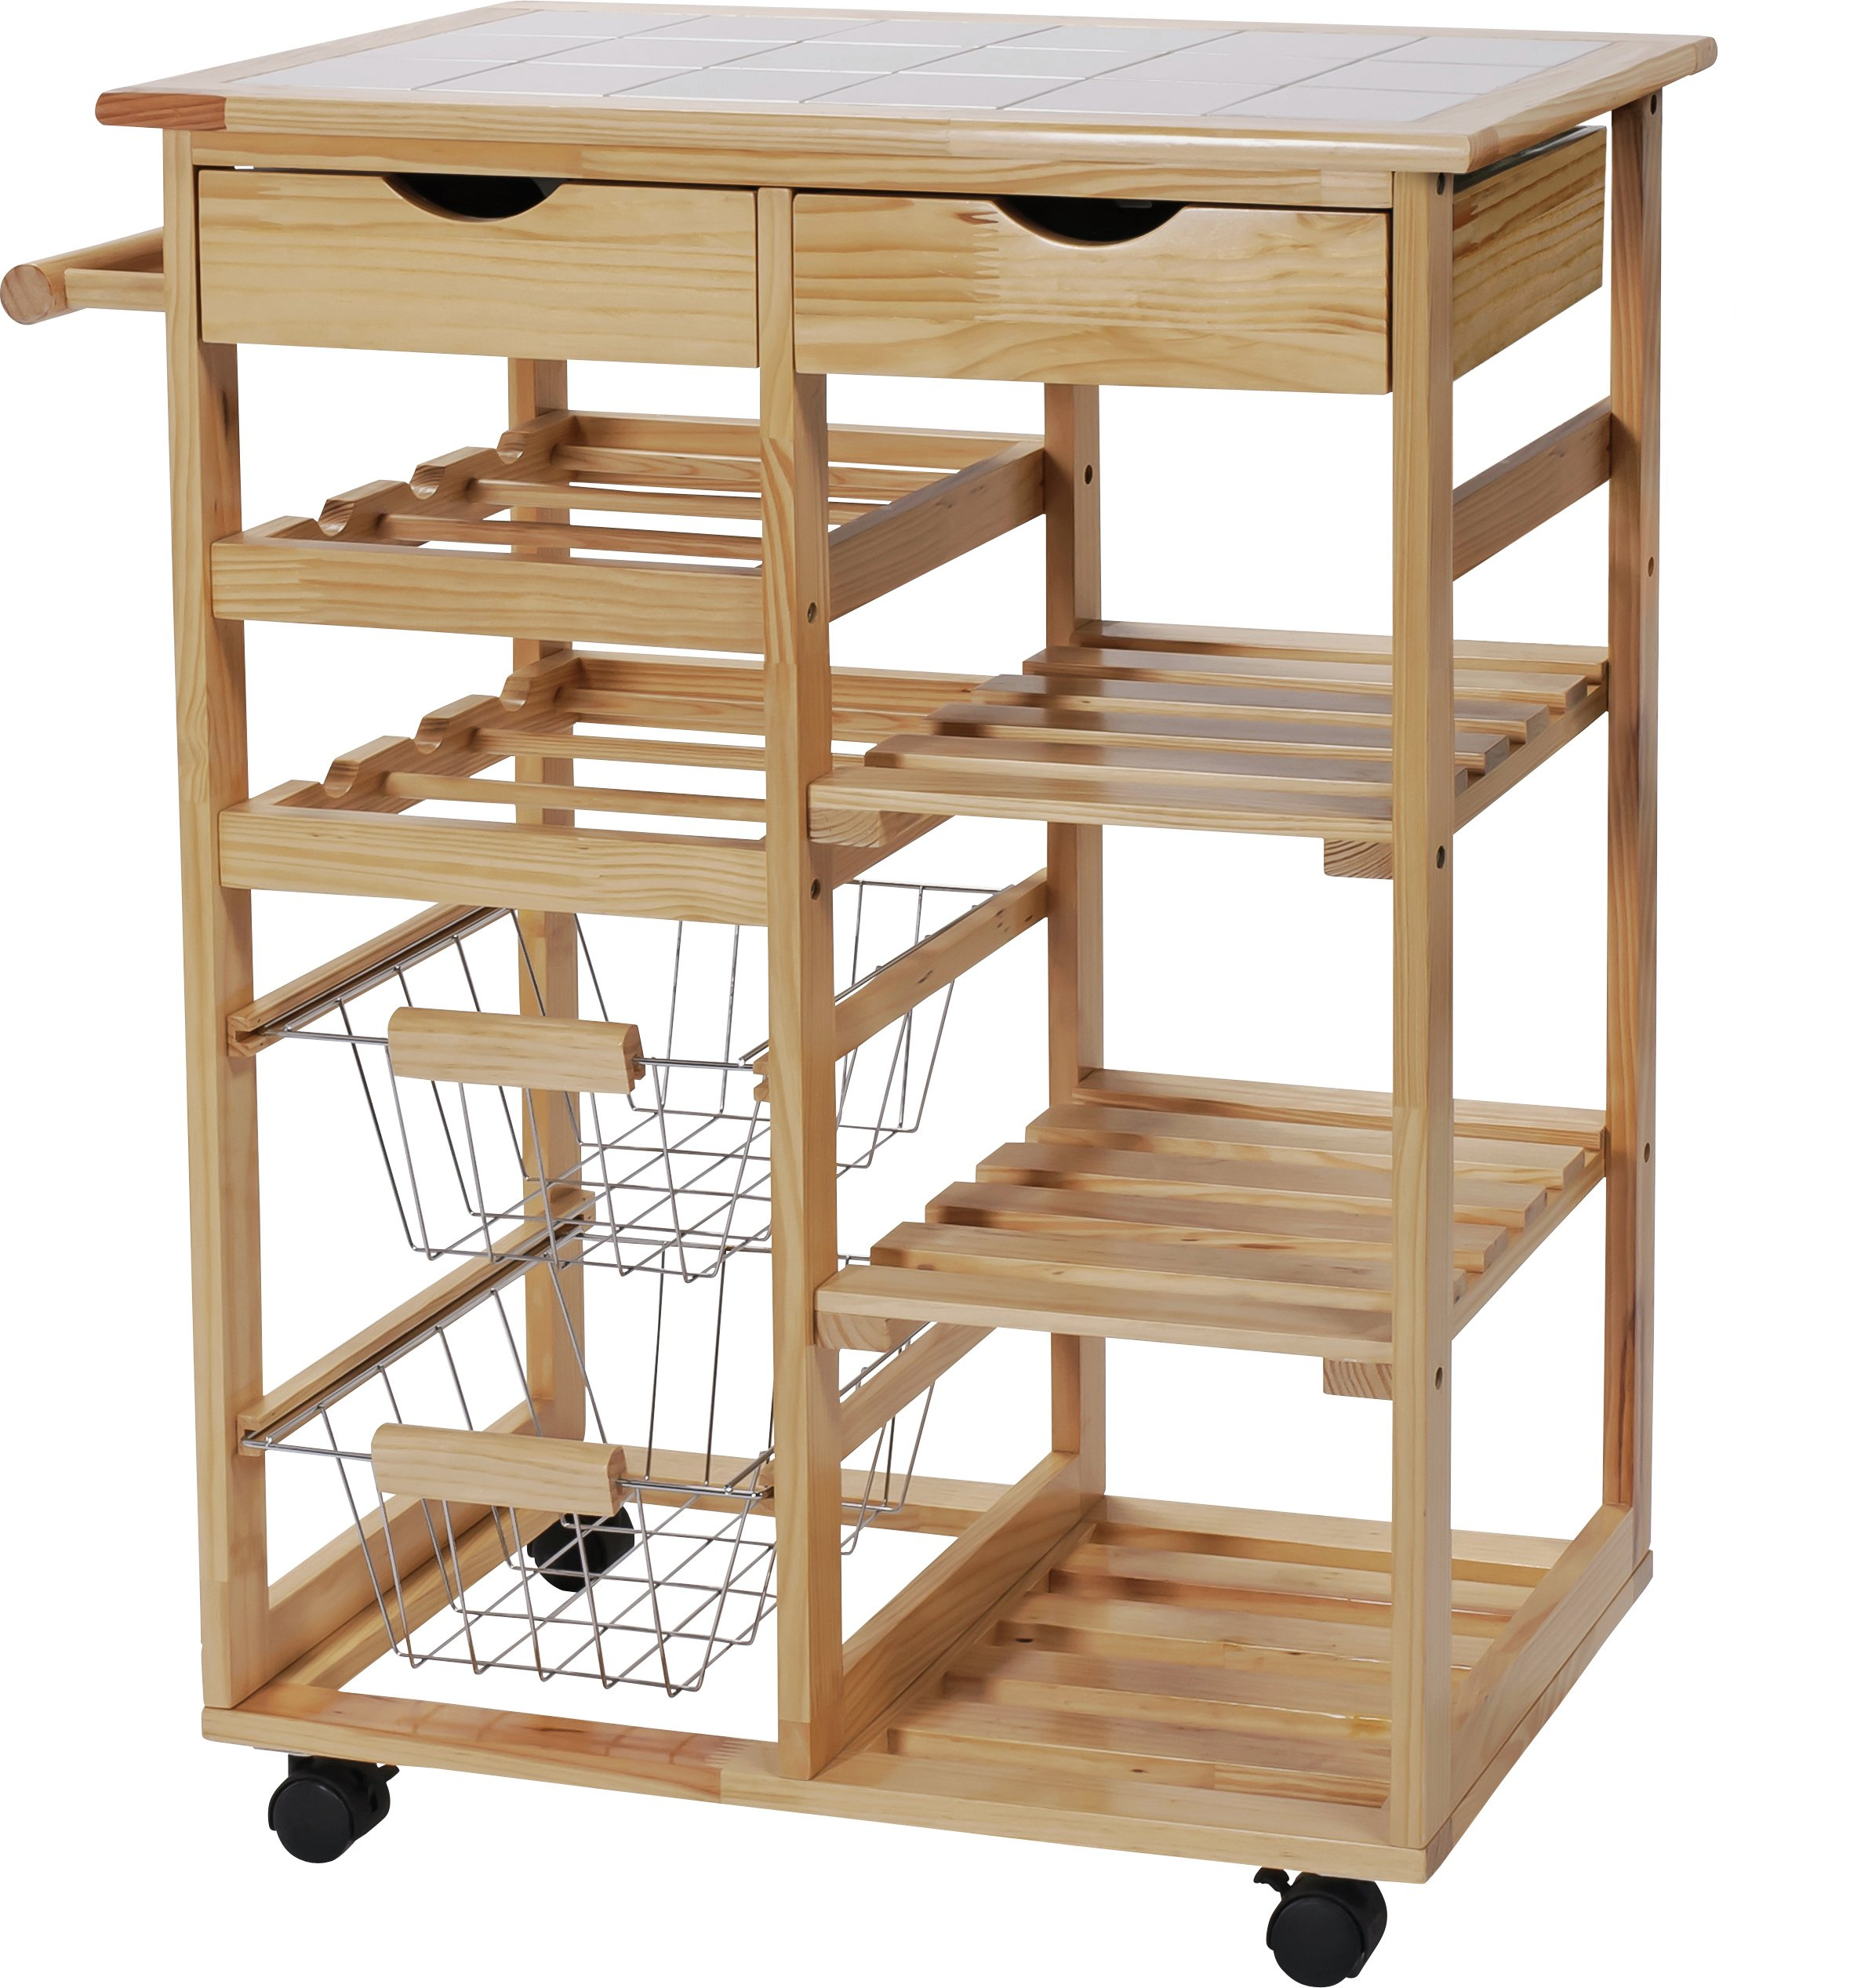 Image of HOME - Pine Tile Top Kitchen Trolley